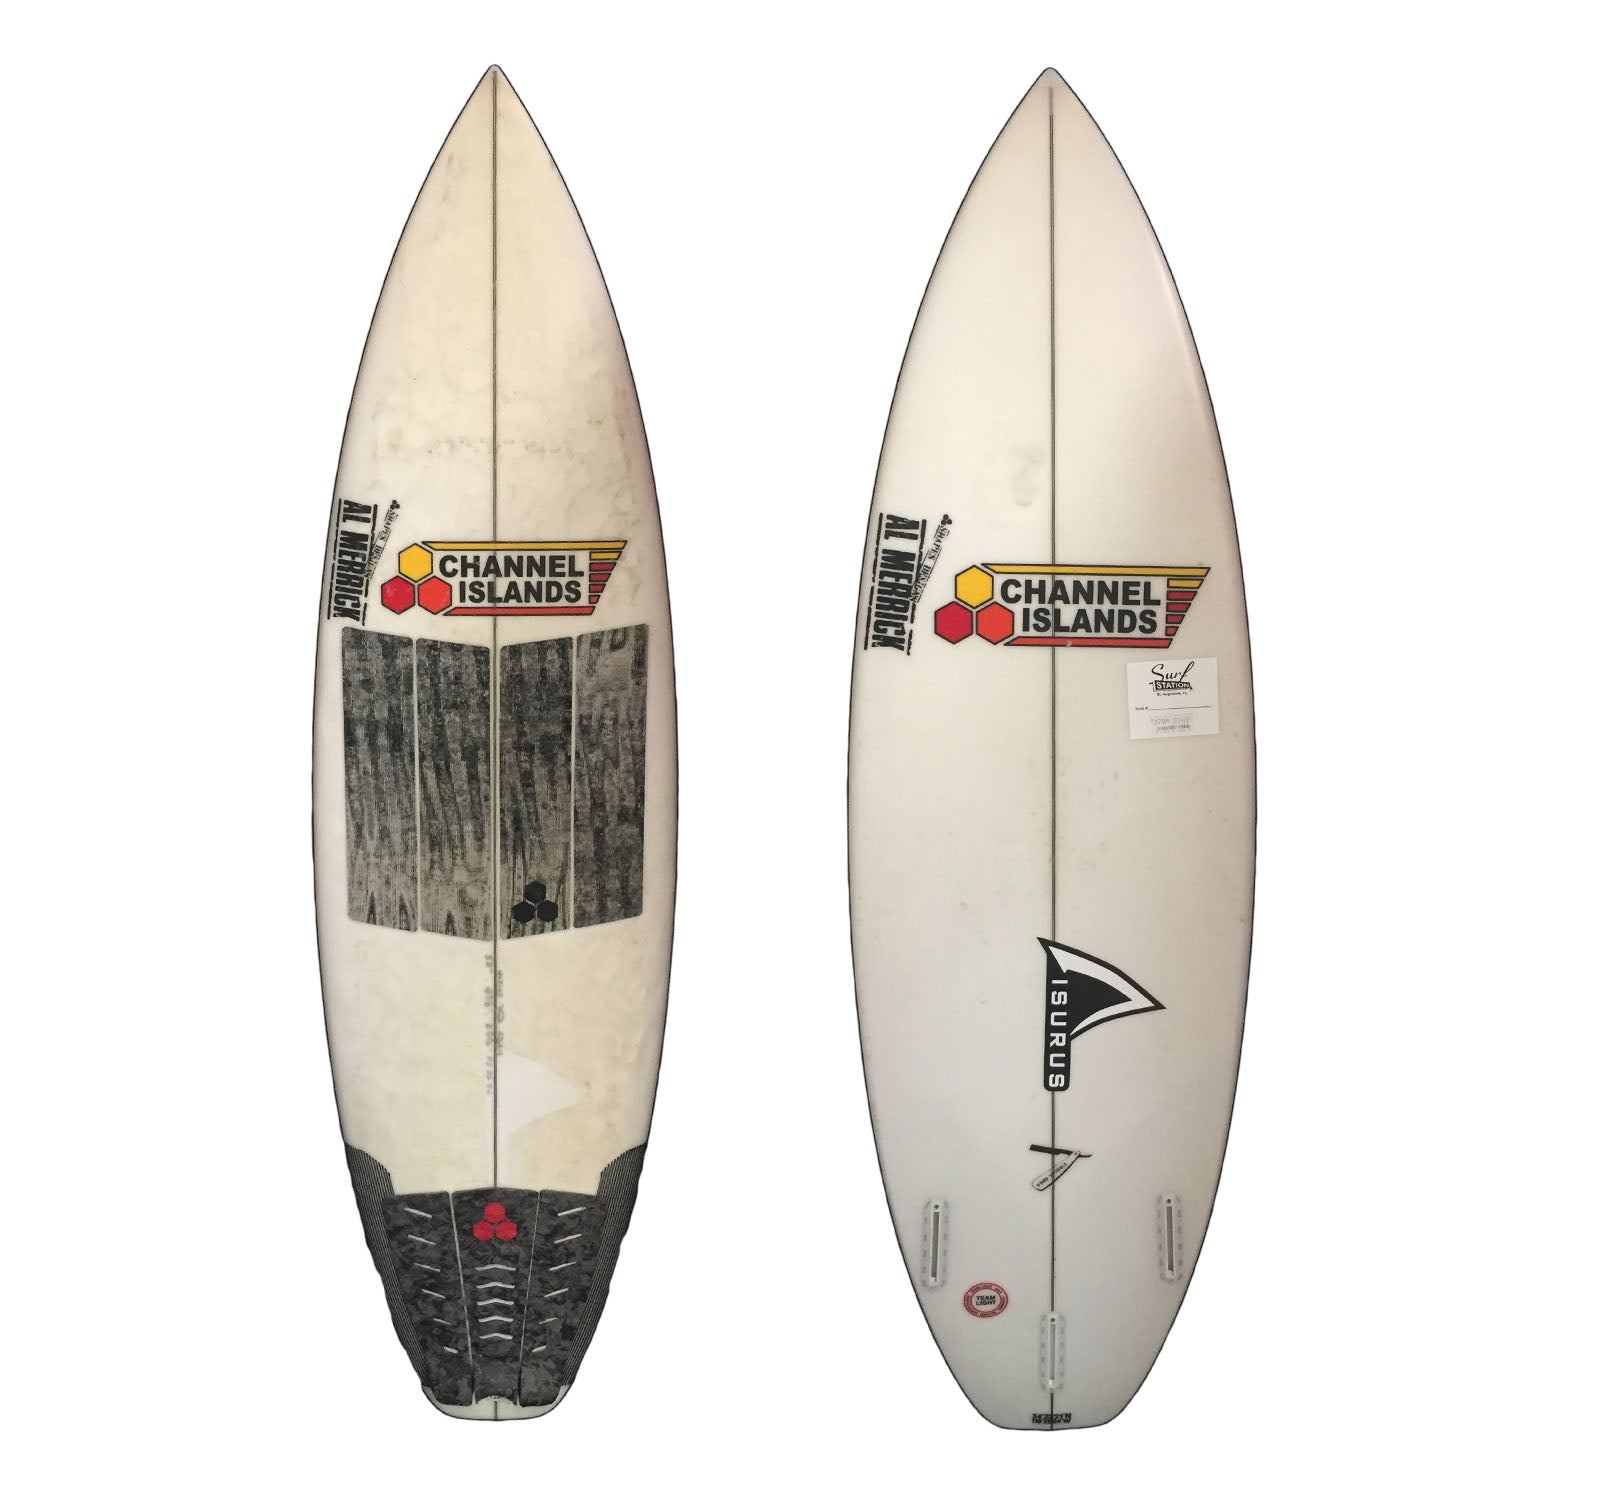 Channel Islands Fred Stubble 5'8 x 18 7/8 x 2 5/16 26.2L Used Surfboard (Team Custom For Lambert)